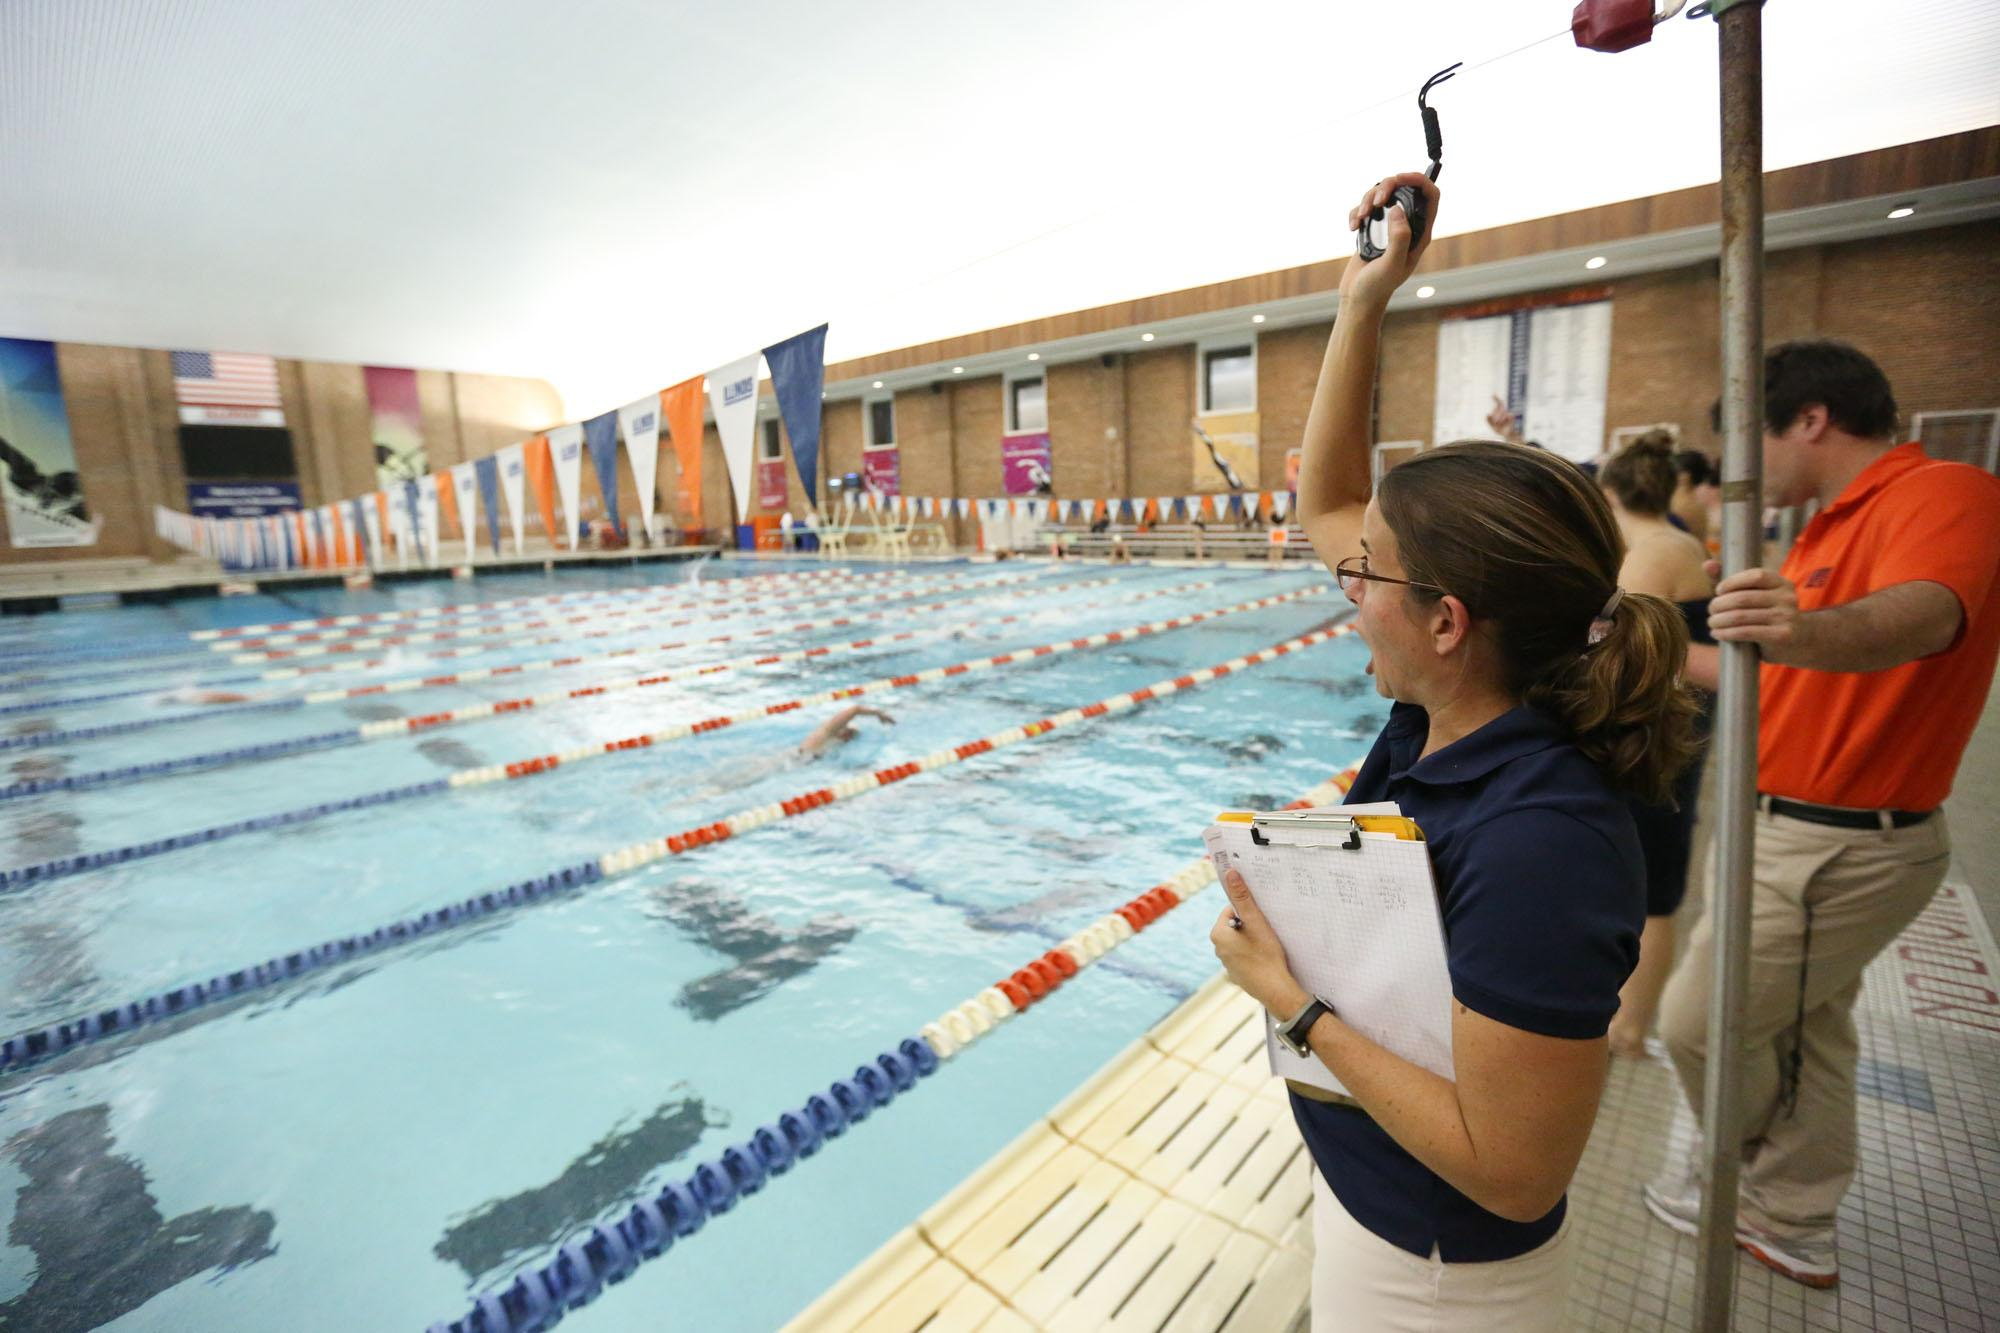 Illinois' head coach Sue Novitsky cheers on her swimmers during the meet against Illinois State at the ARC, on Friday, Nov. 1, 2013. The Illini won 206-94.